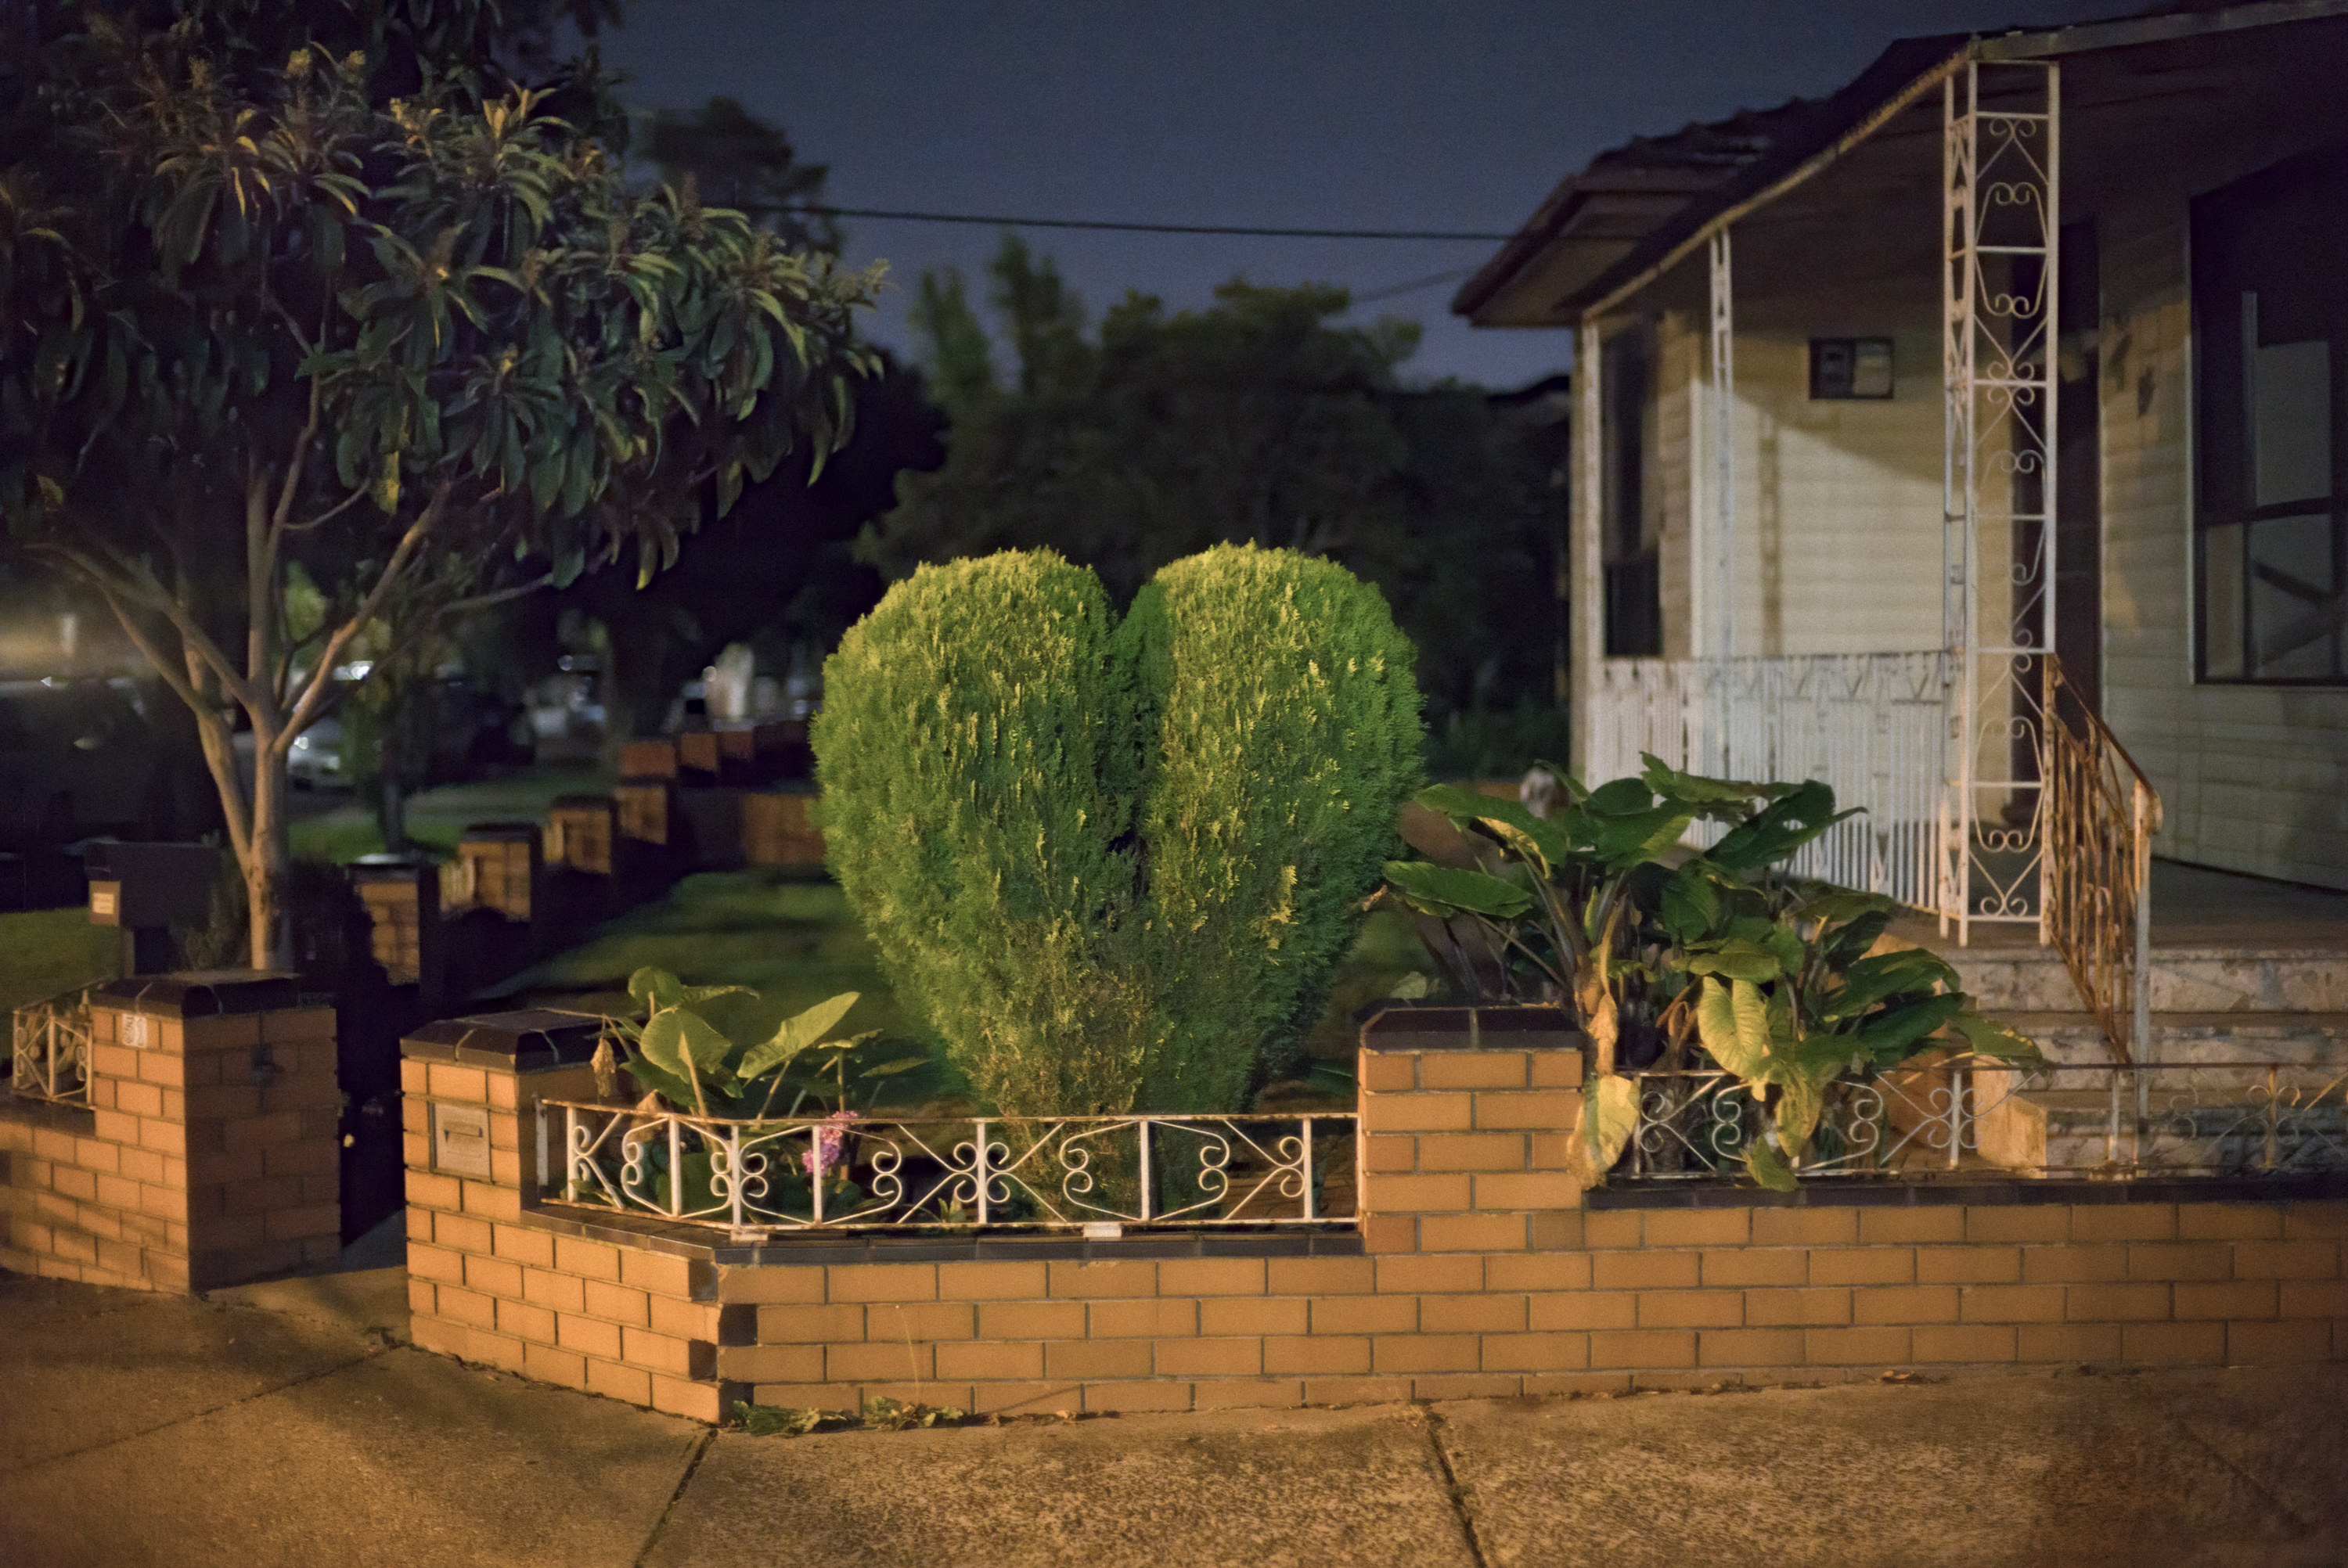 Pender St heart shaped bush